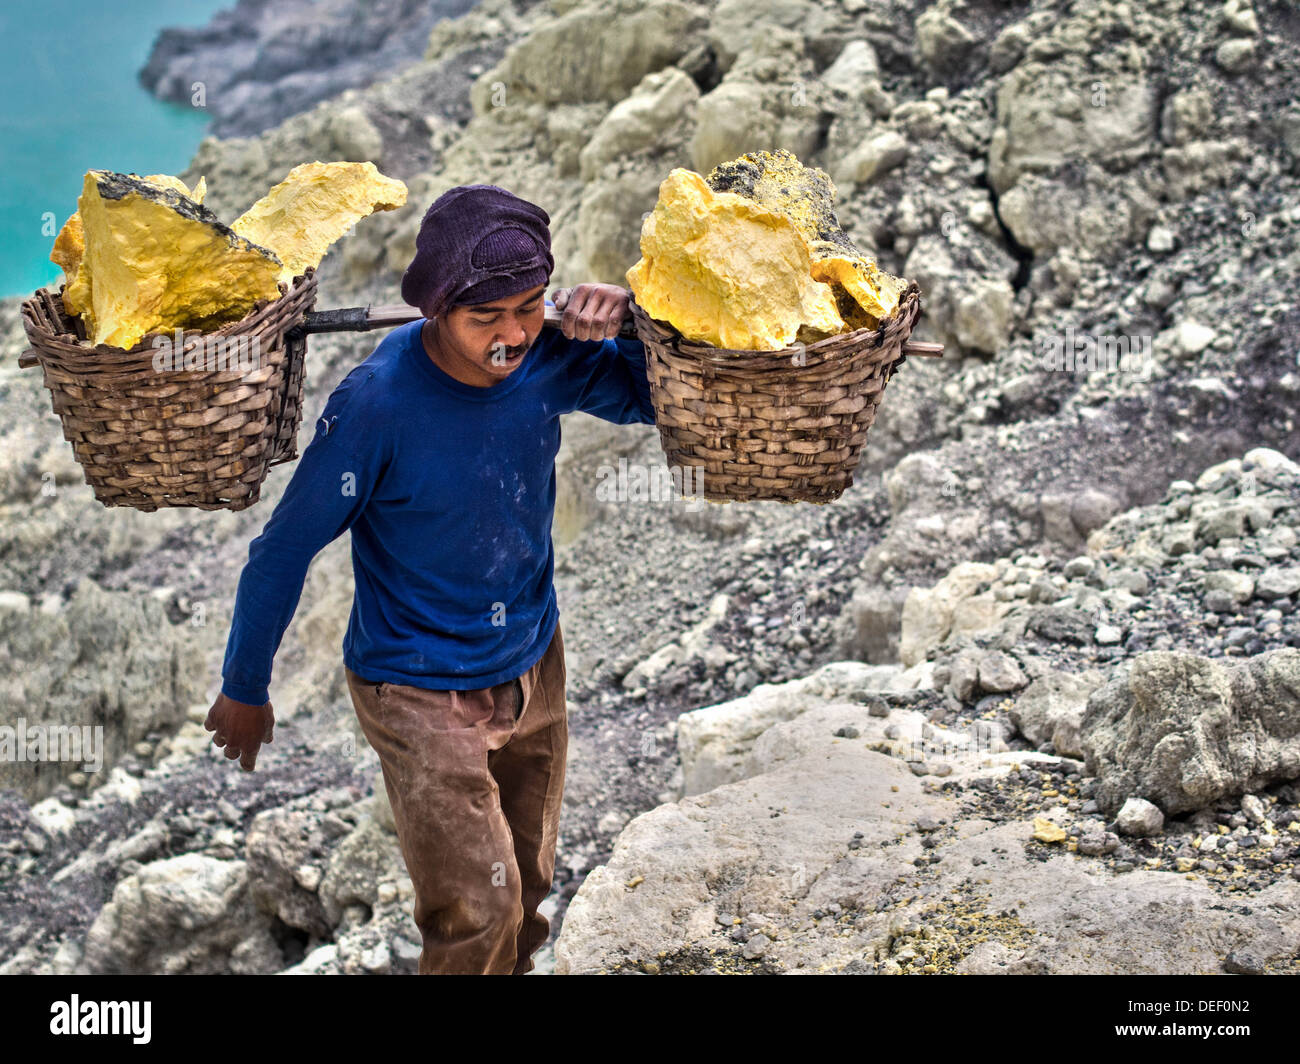 Sulfur miner carrying load of solid sulfur at the Kawah Ijen volcano in Indonesia. - Stock Image